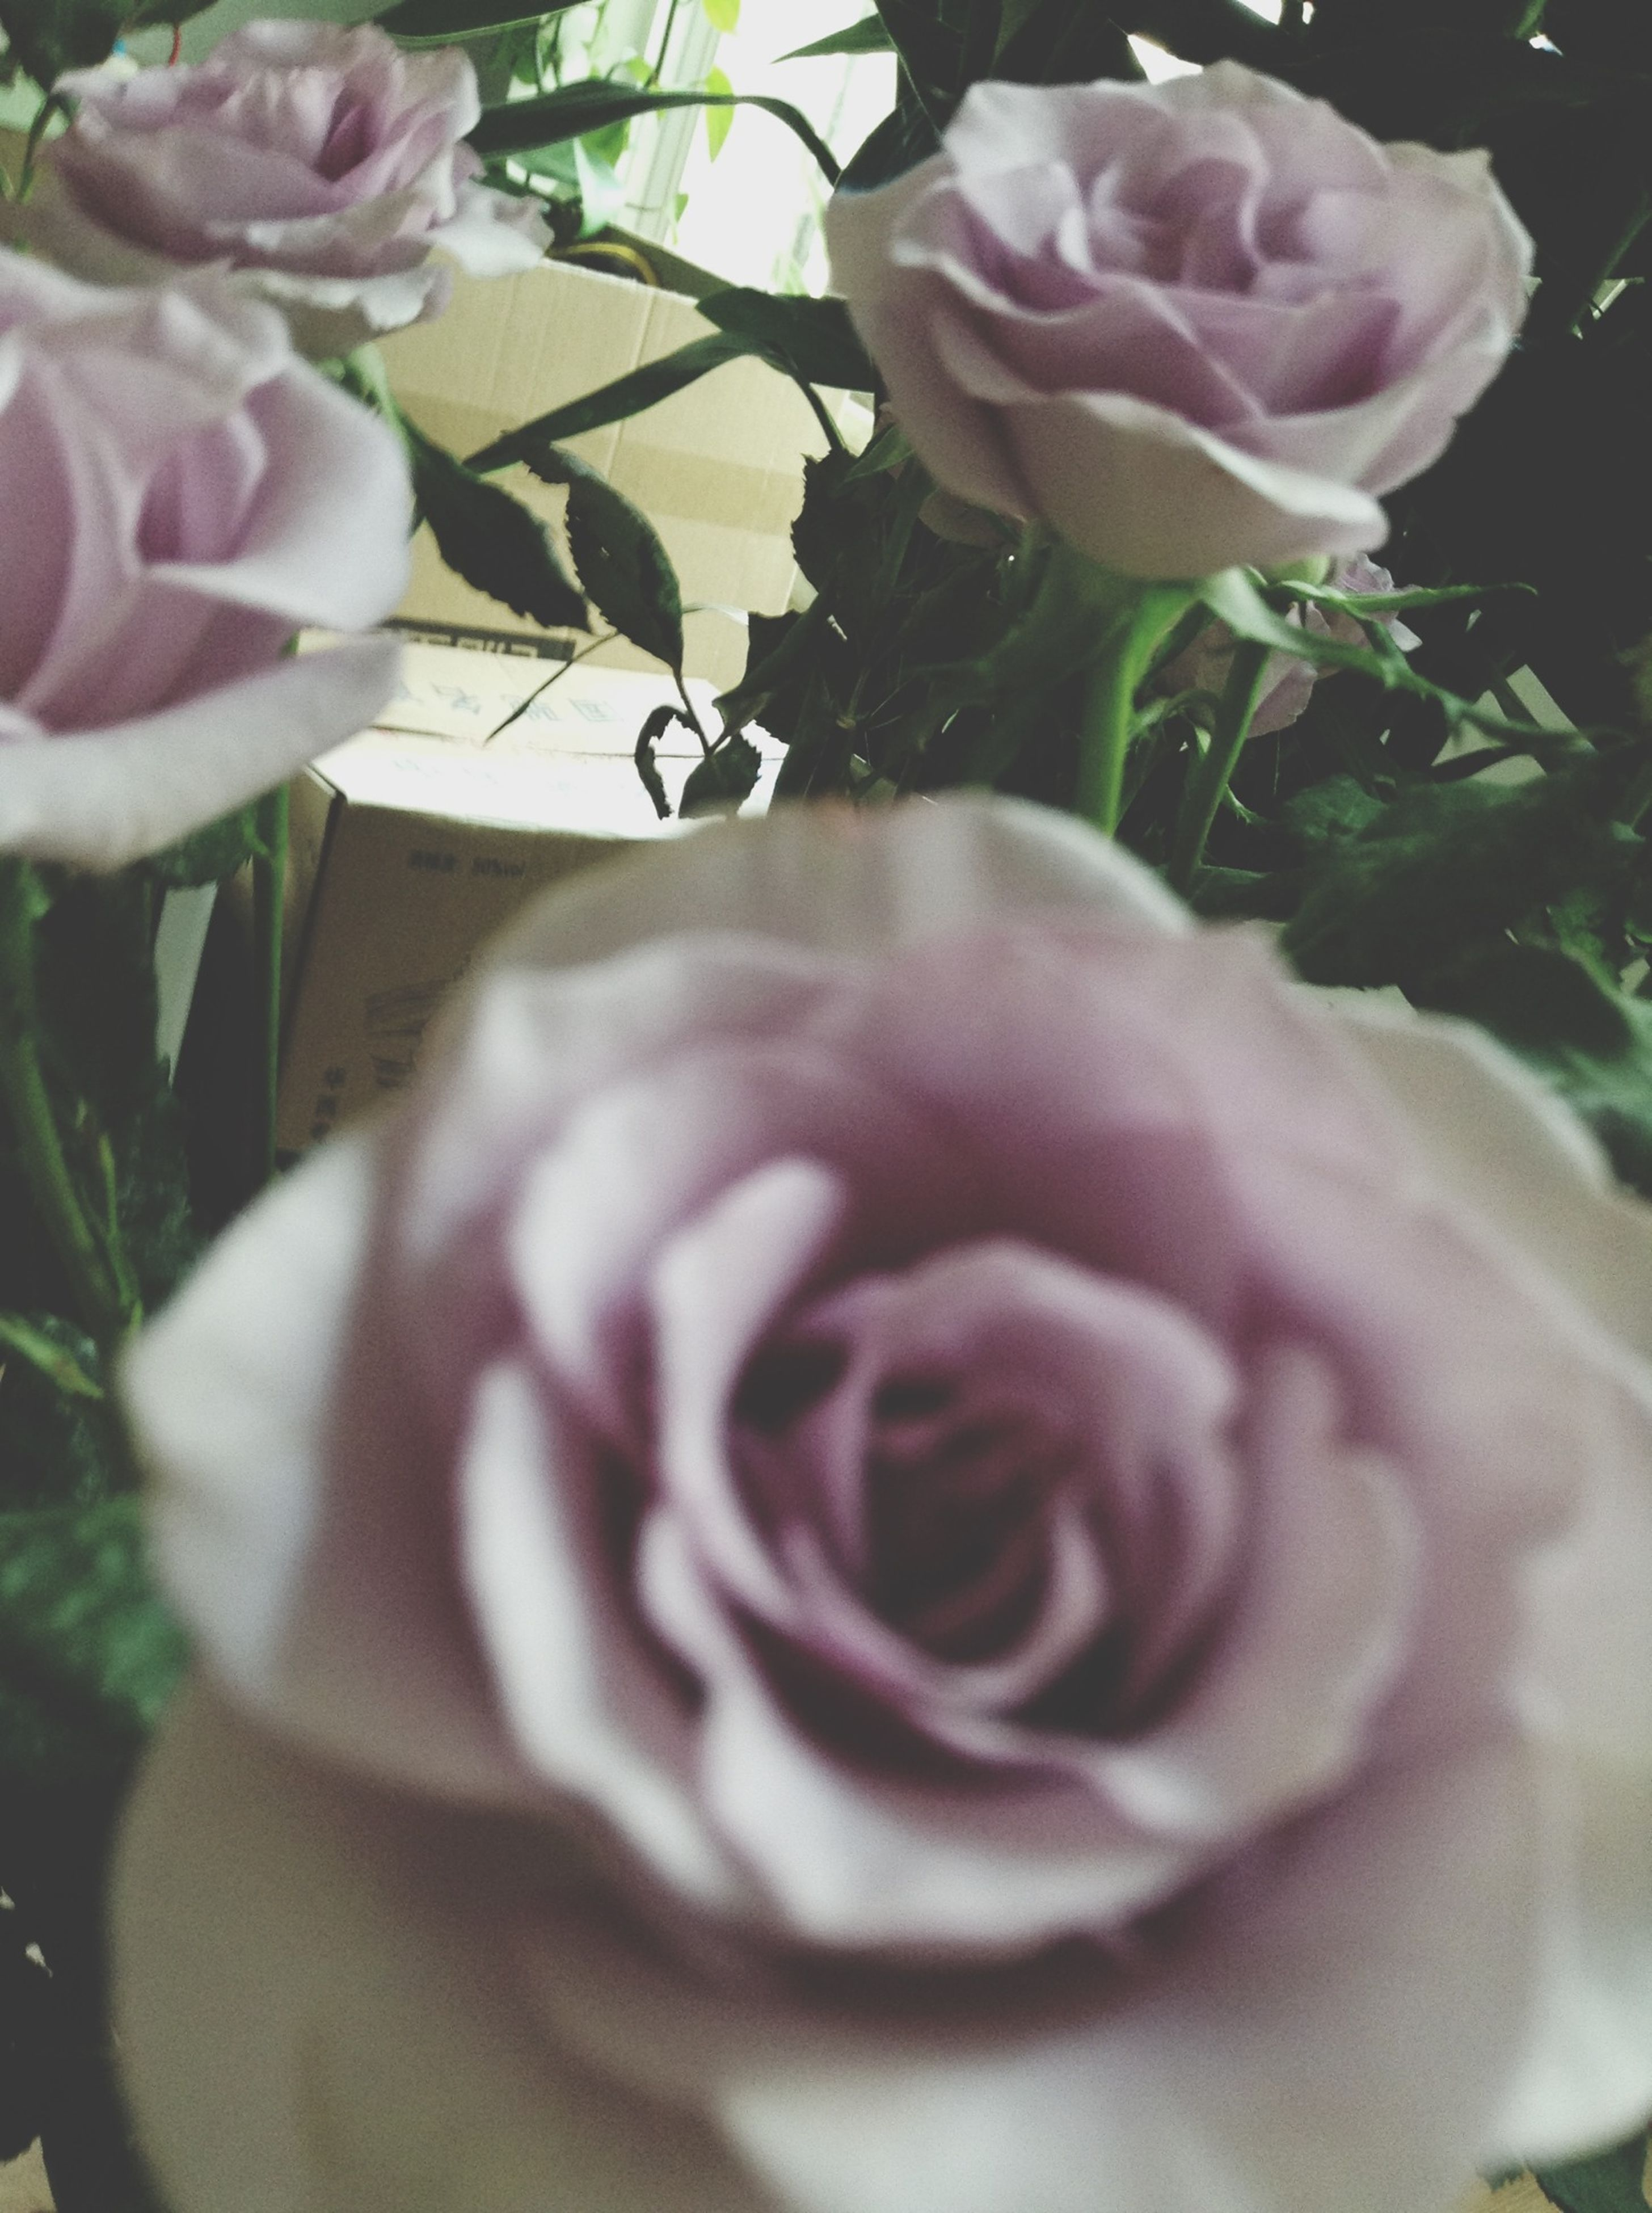 flower, petal, freshness, fragility, flower head, rose - flower, growth, beauty in nature, close-up, blooming, pink color, nature, plant, in bloom, focus on foreground, rose, blossom, single flower, botany, day